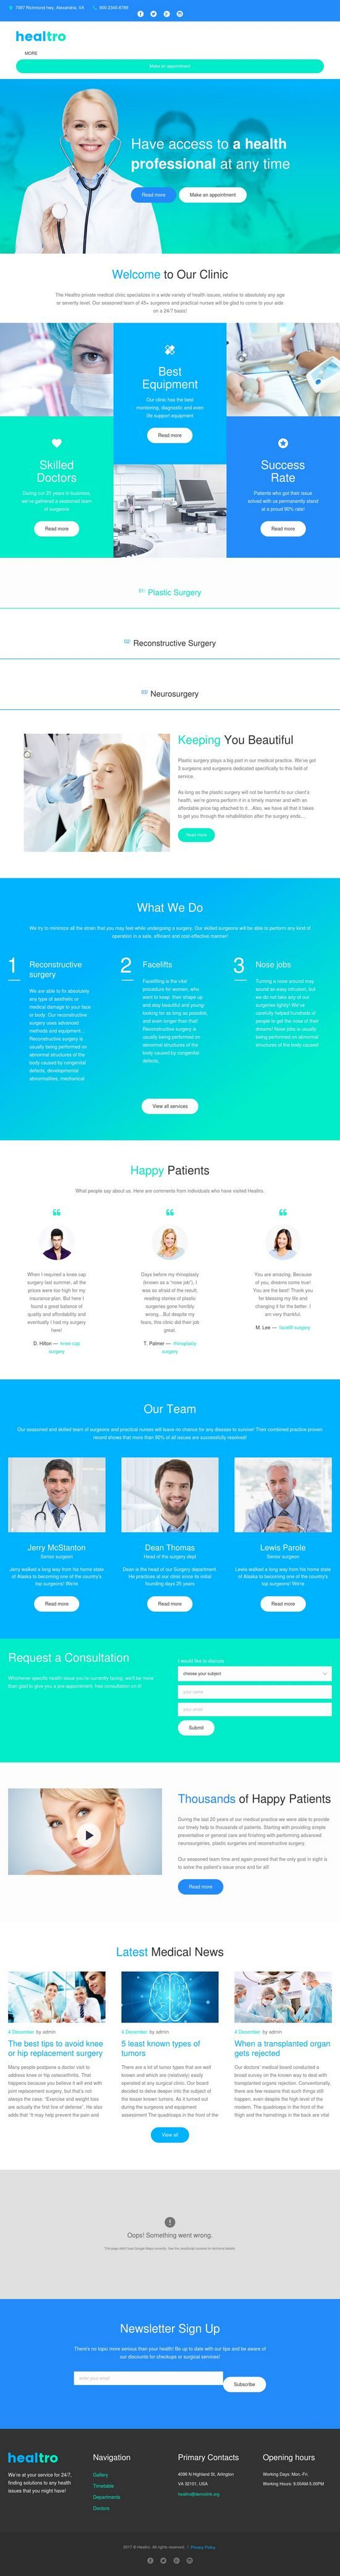 healtro medical wordpress theme 01 550x4170 - Healtro WordPress Theme